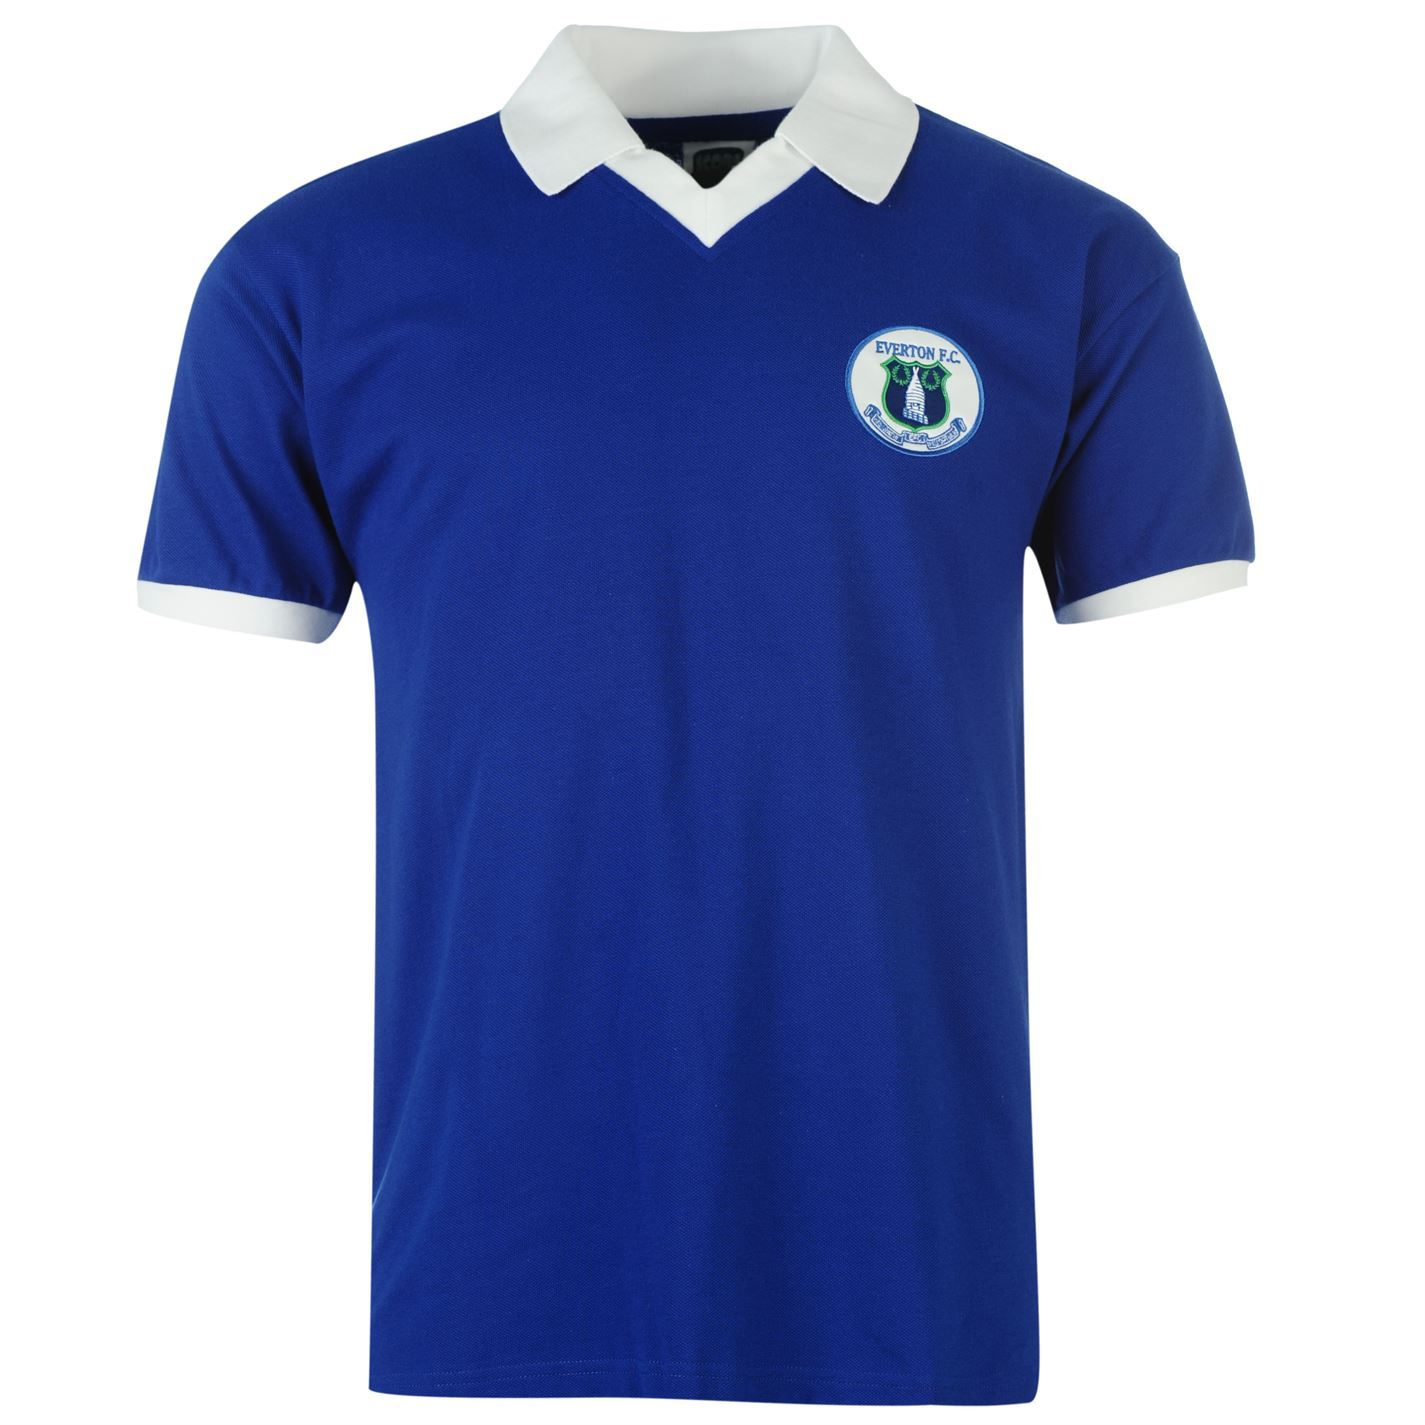 Details About Everton Fc  Home Jersey Score Draw Mens Royal Retro